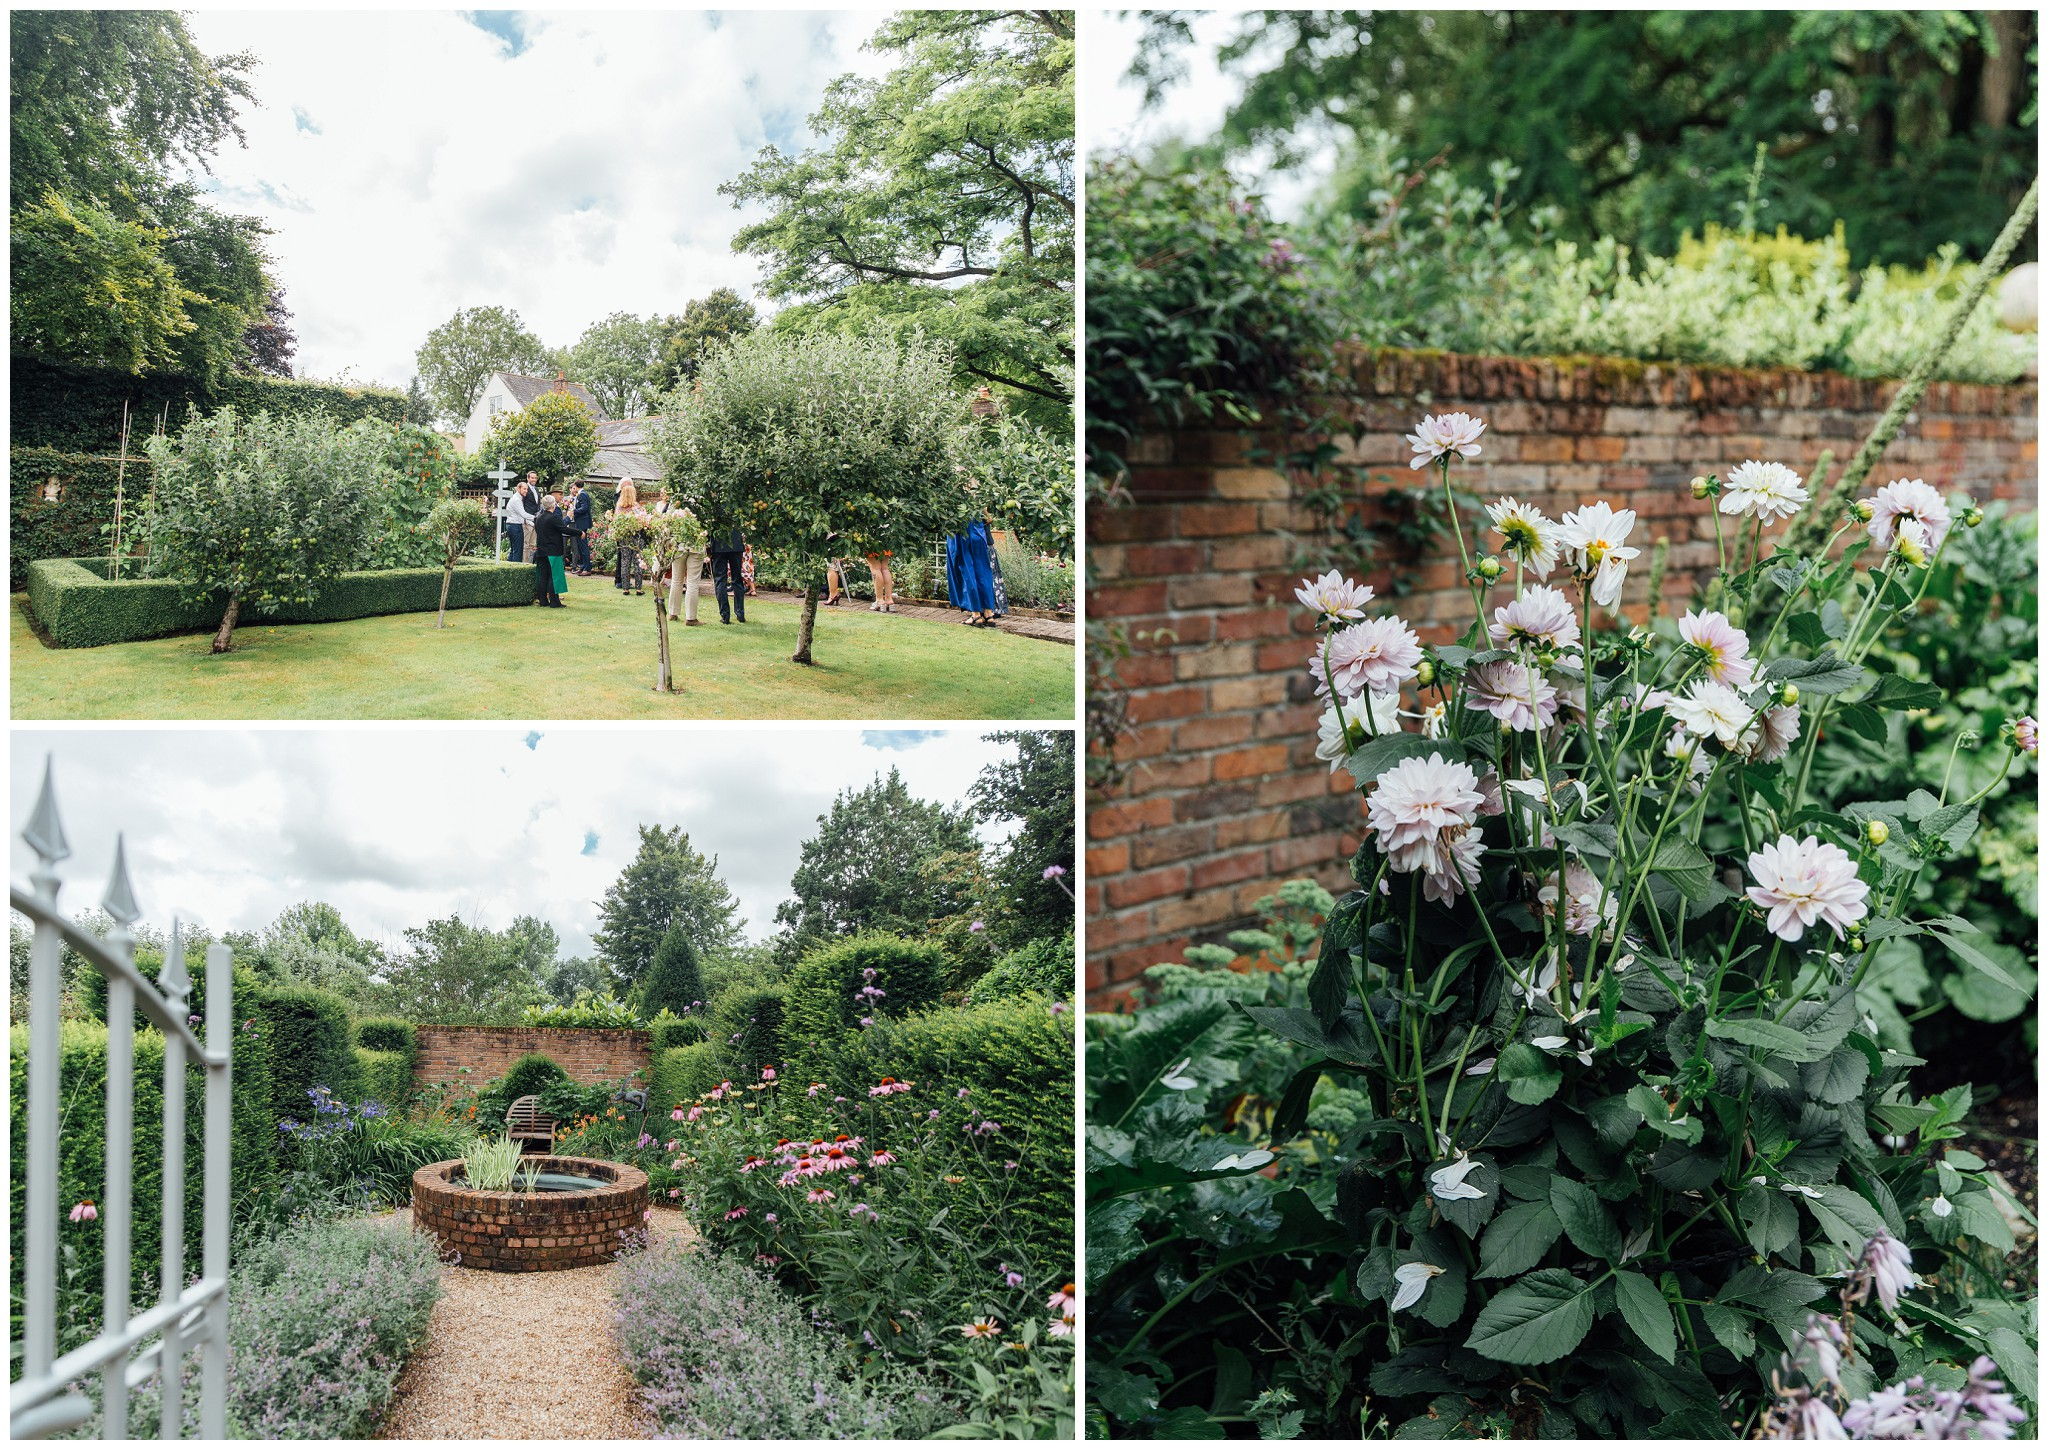 Backgarden wedding inspiration